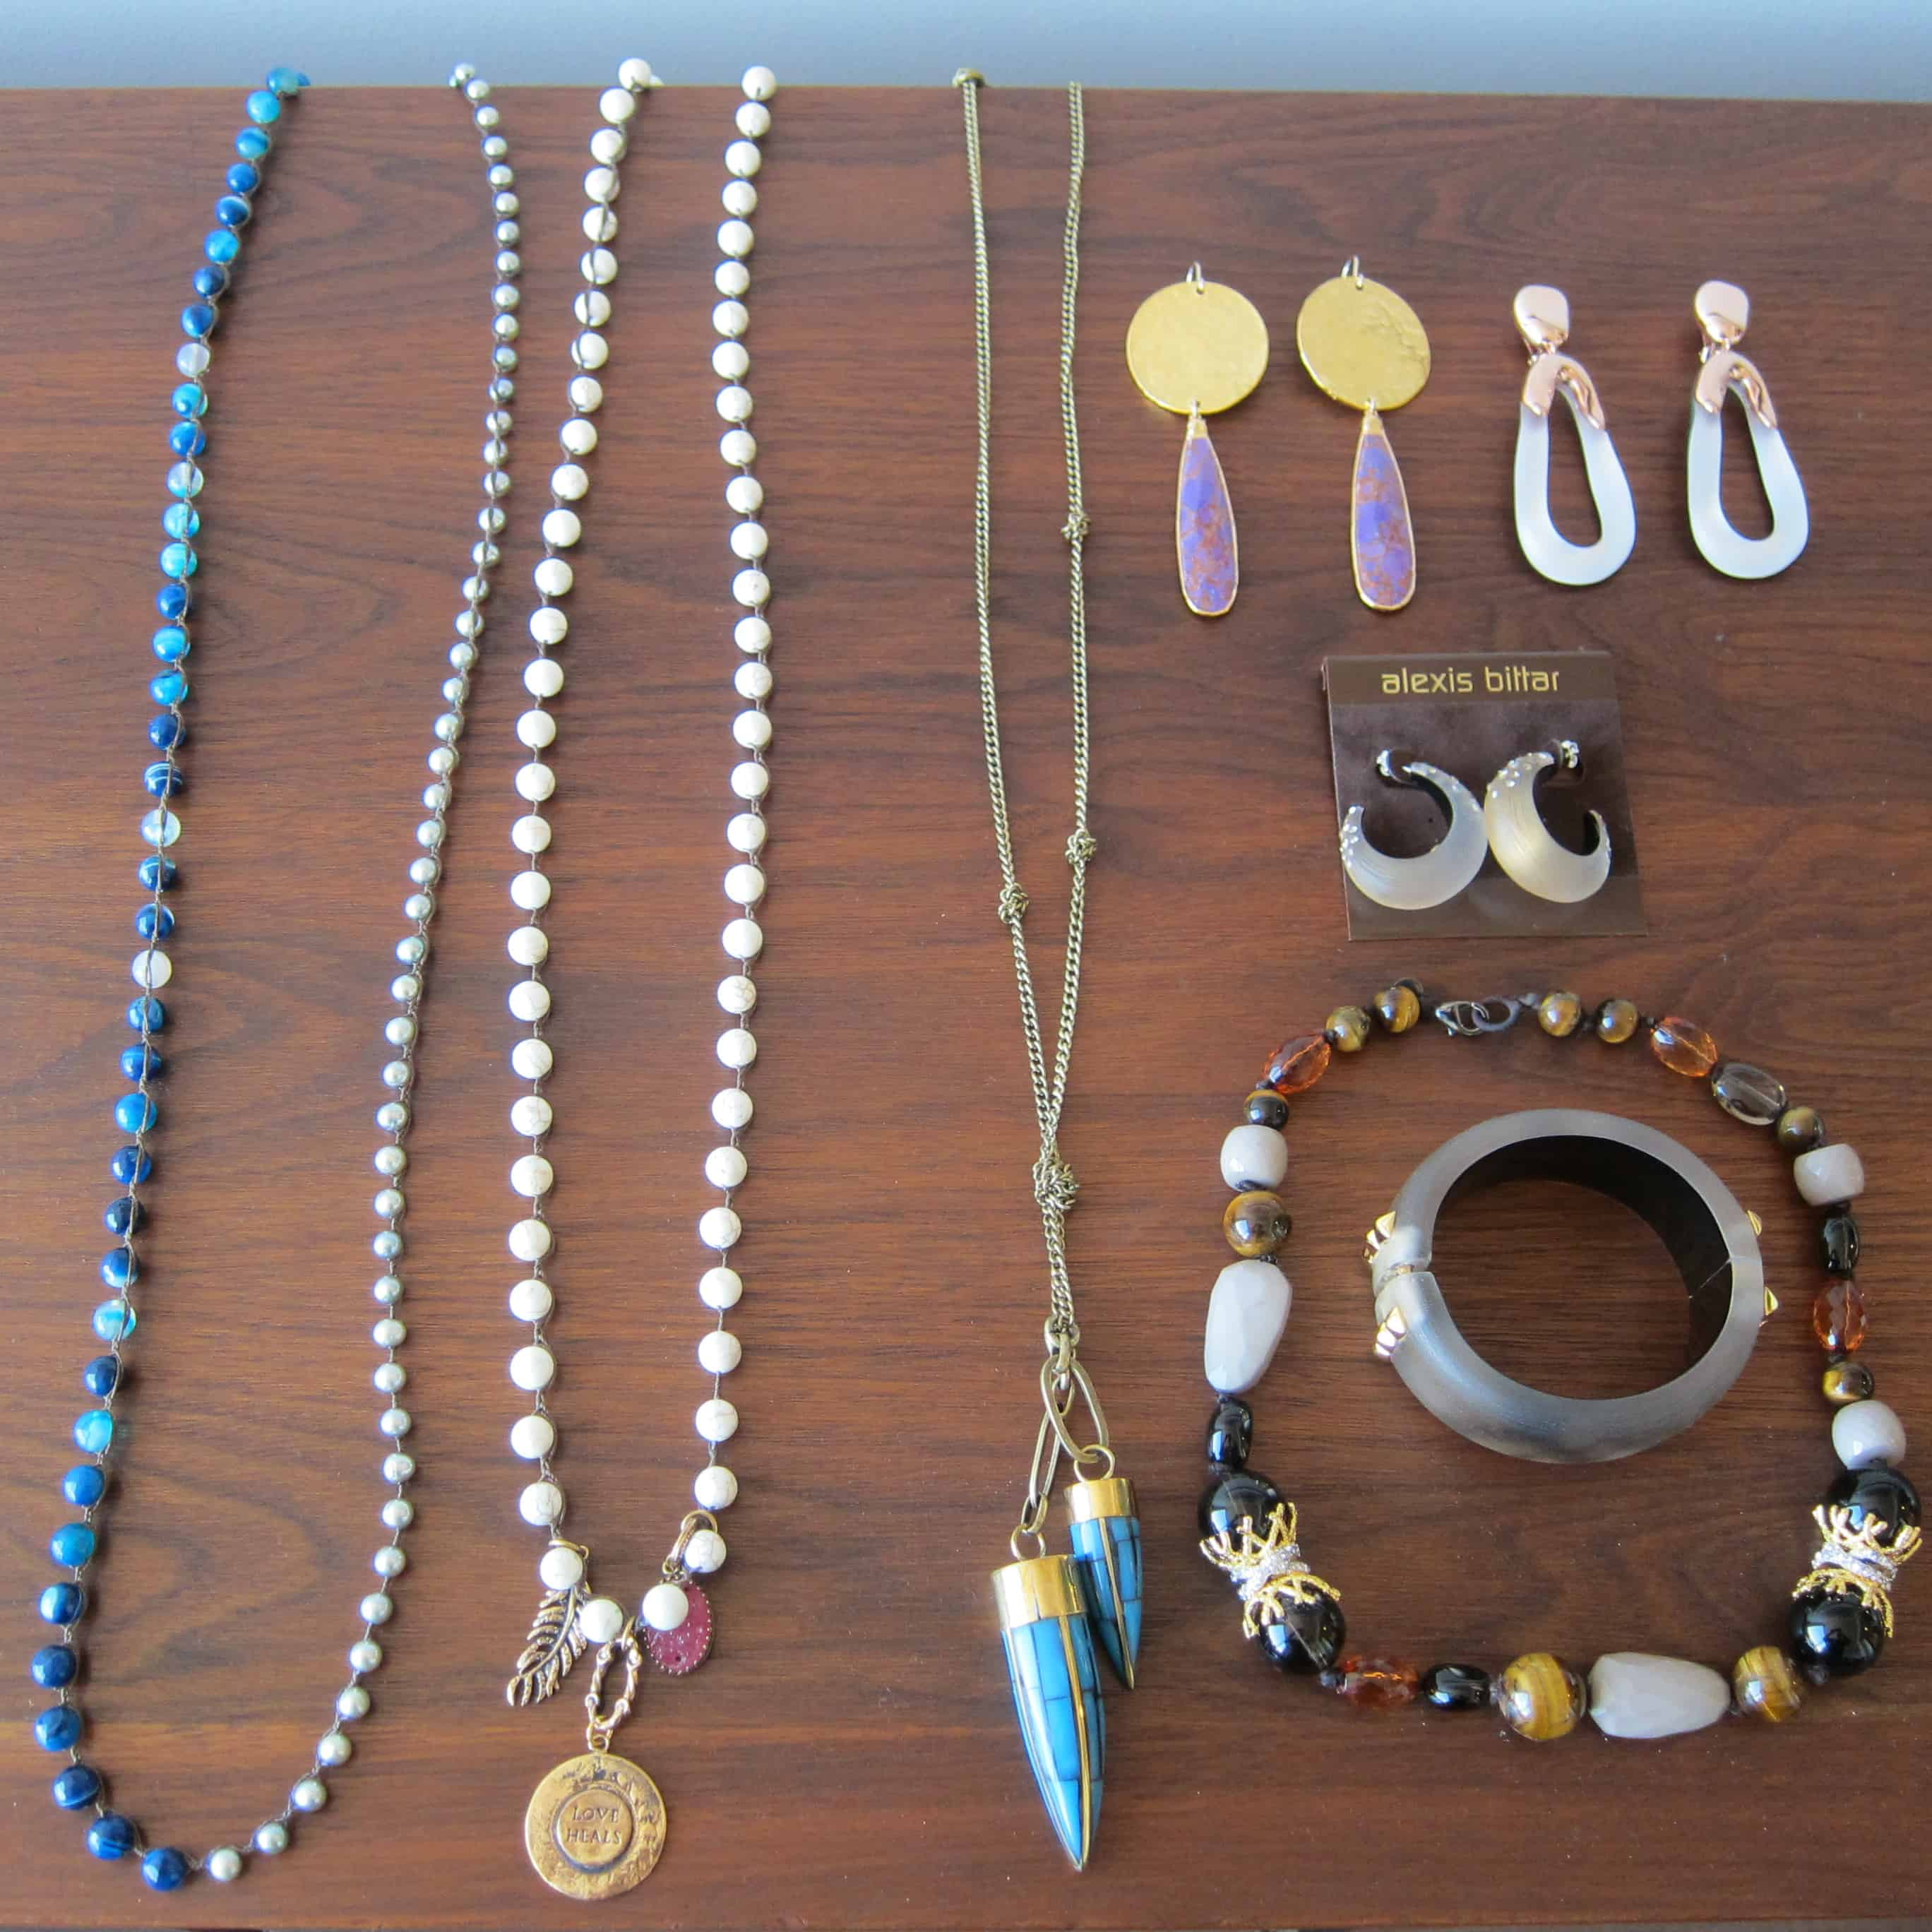 colorful earrings and necklaces